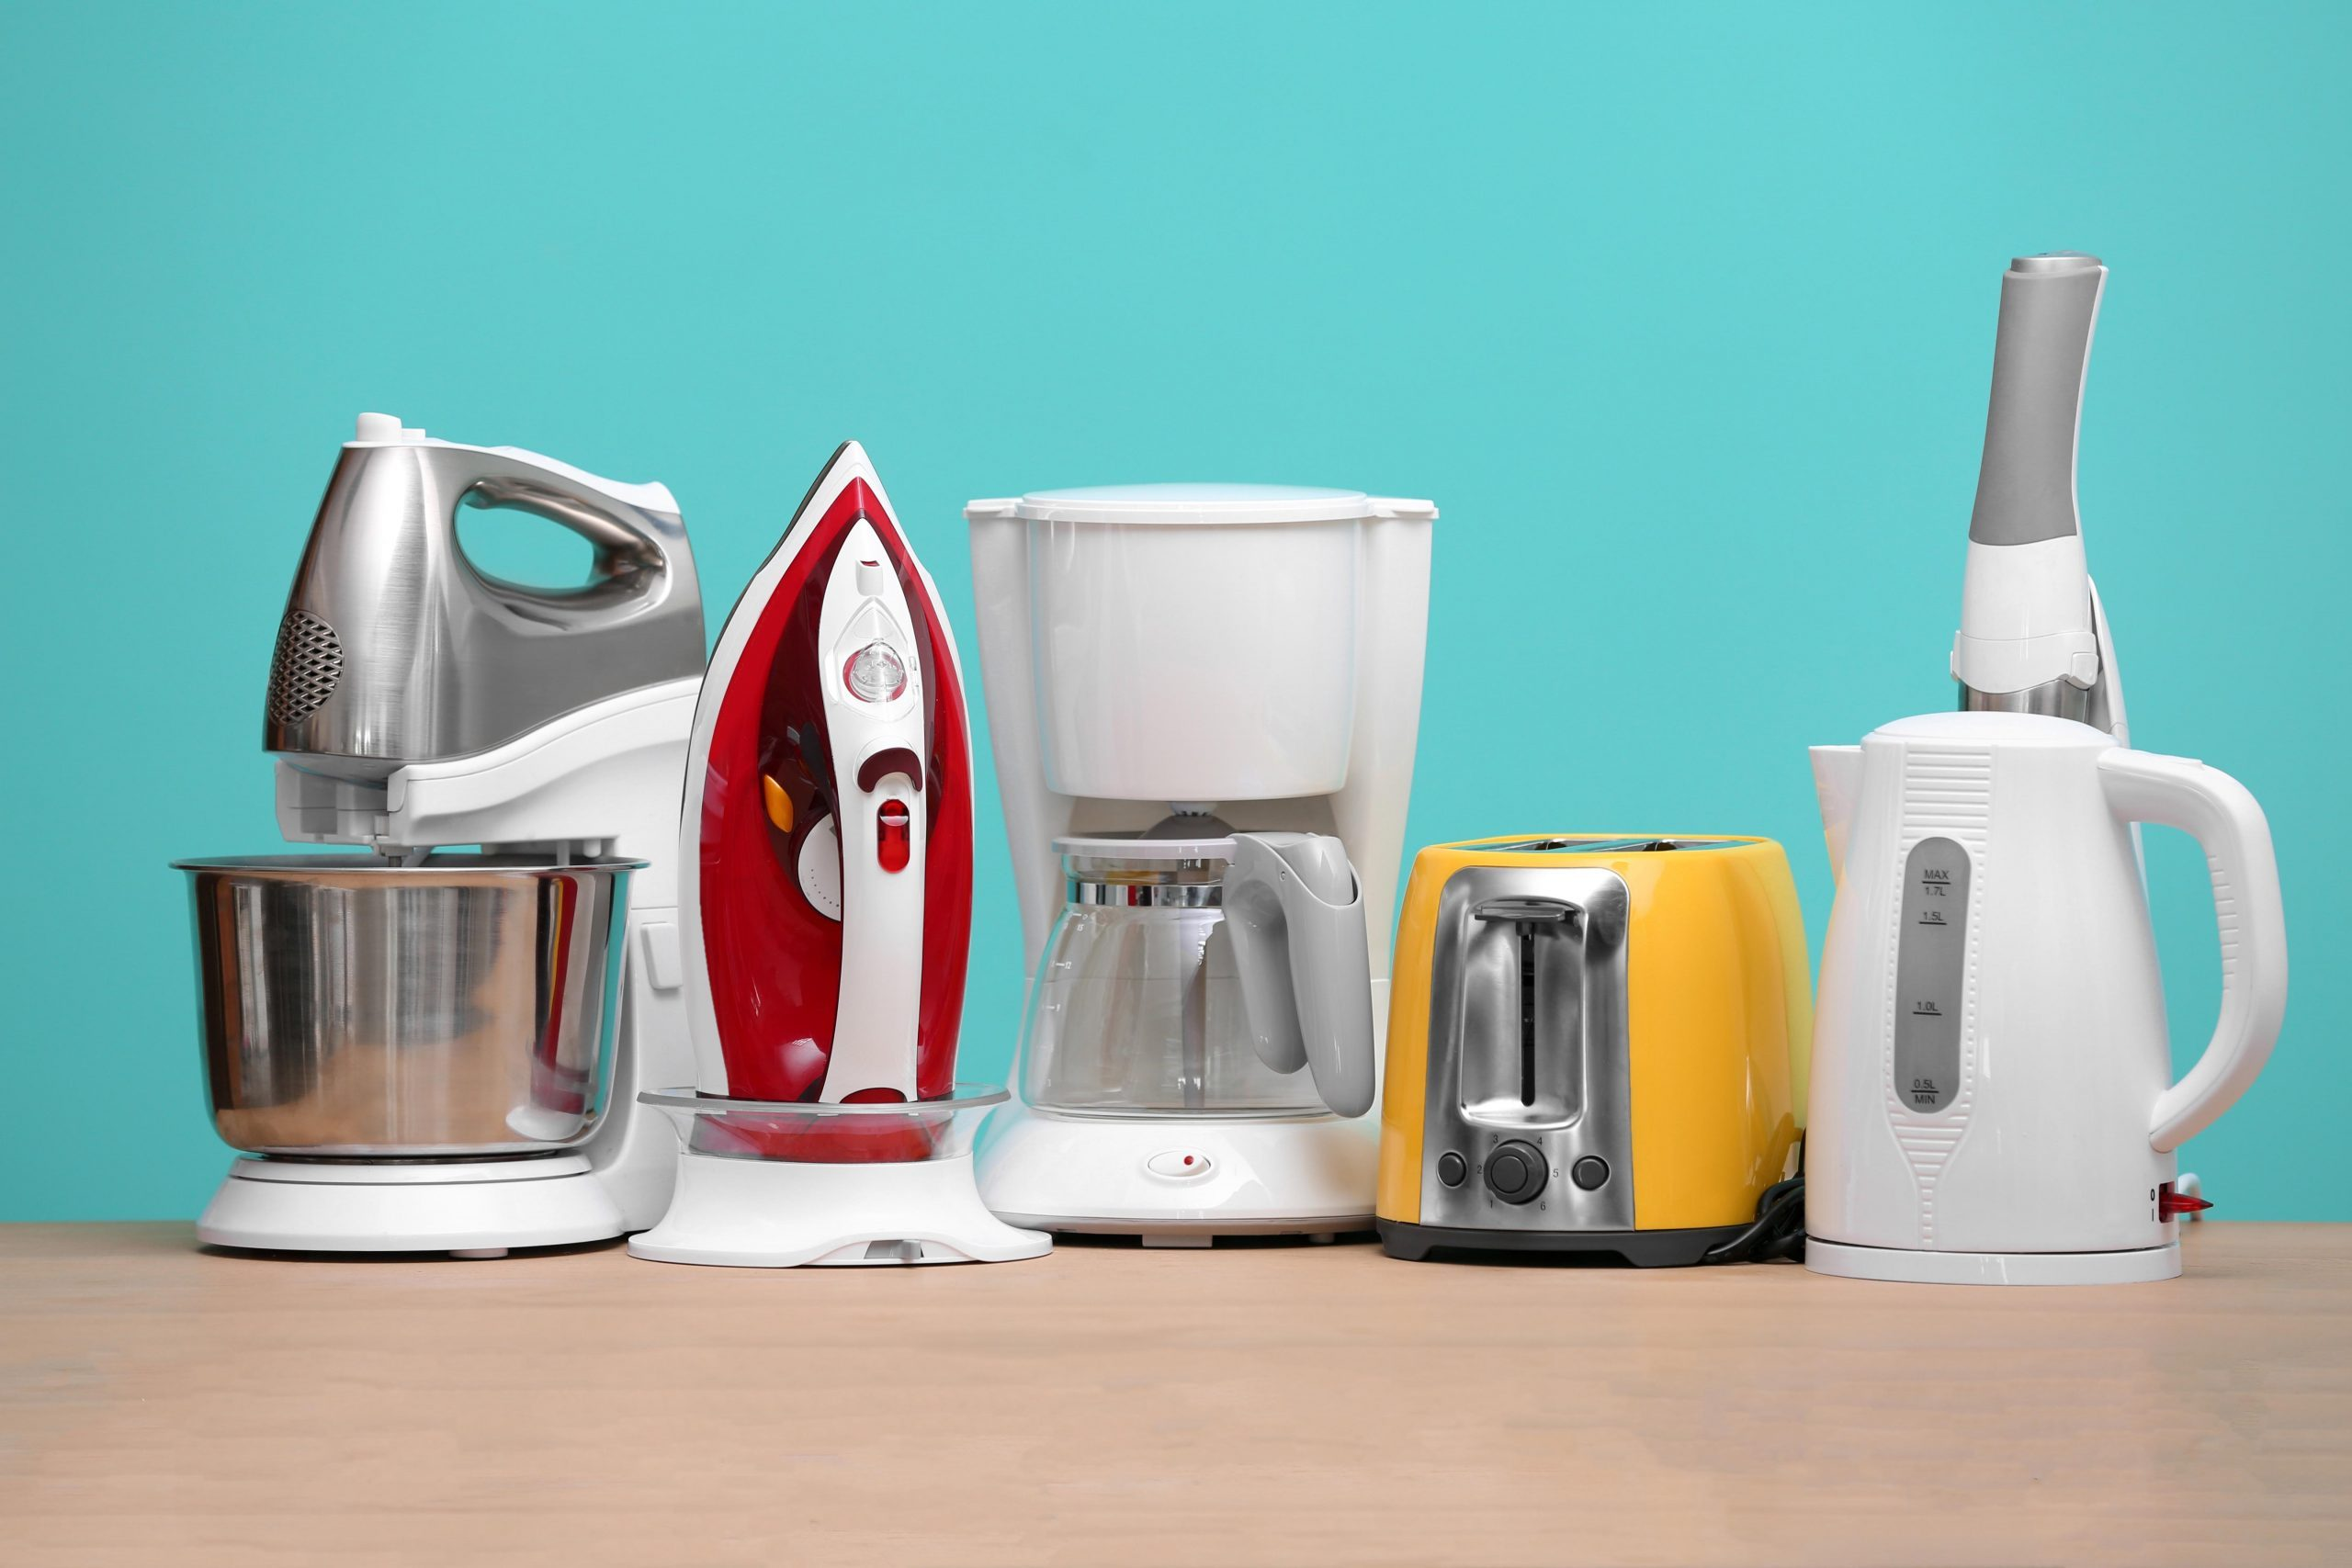 new appliances on blue background